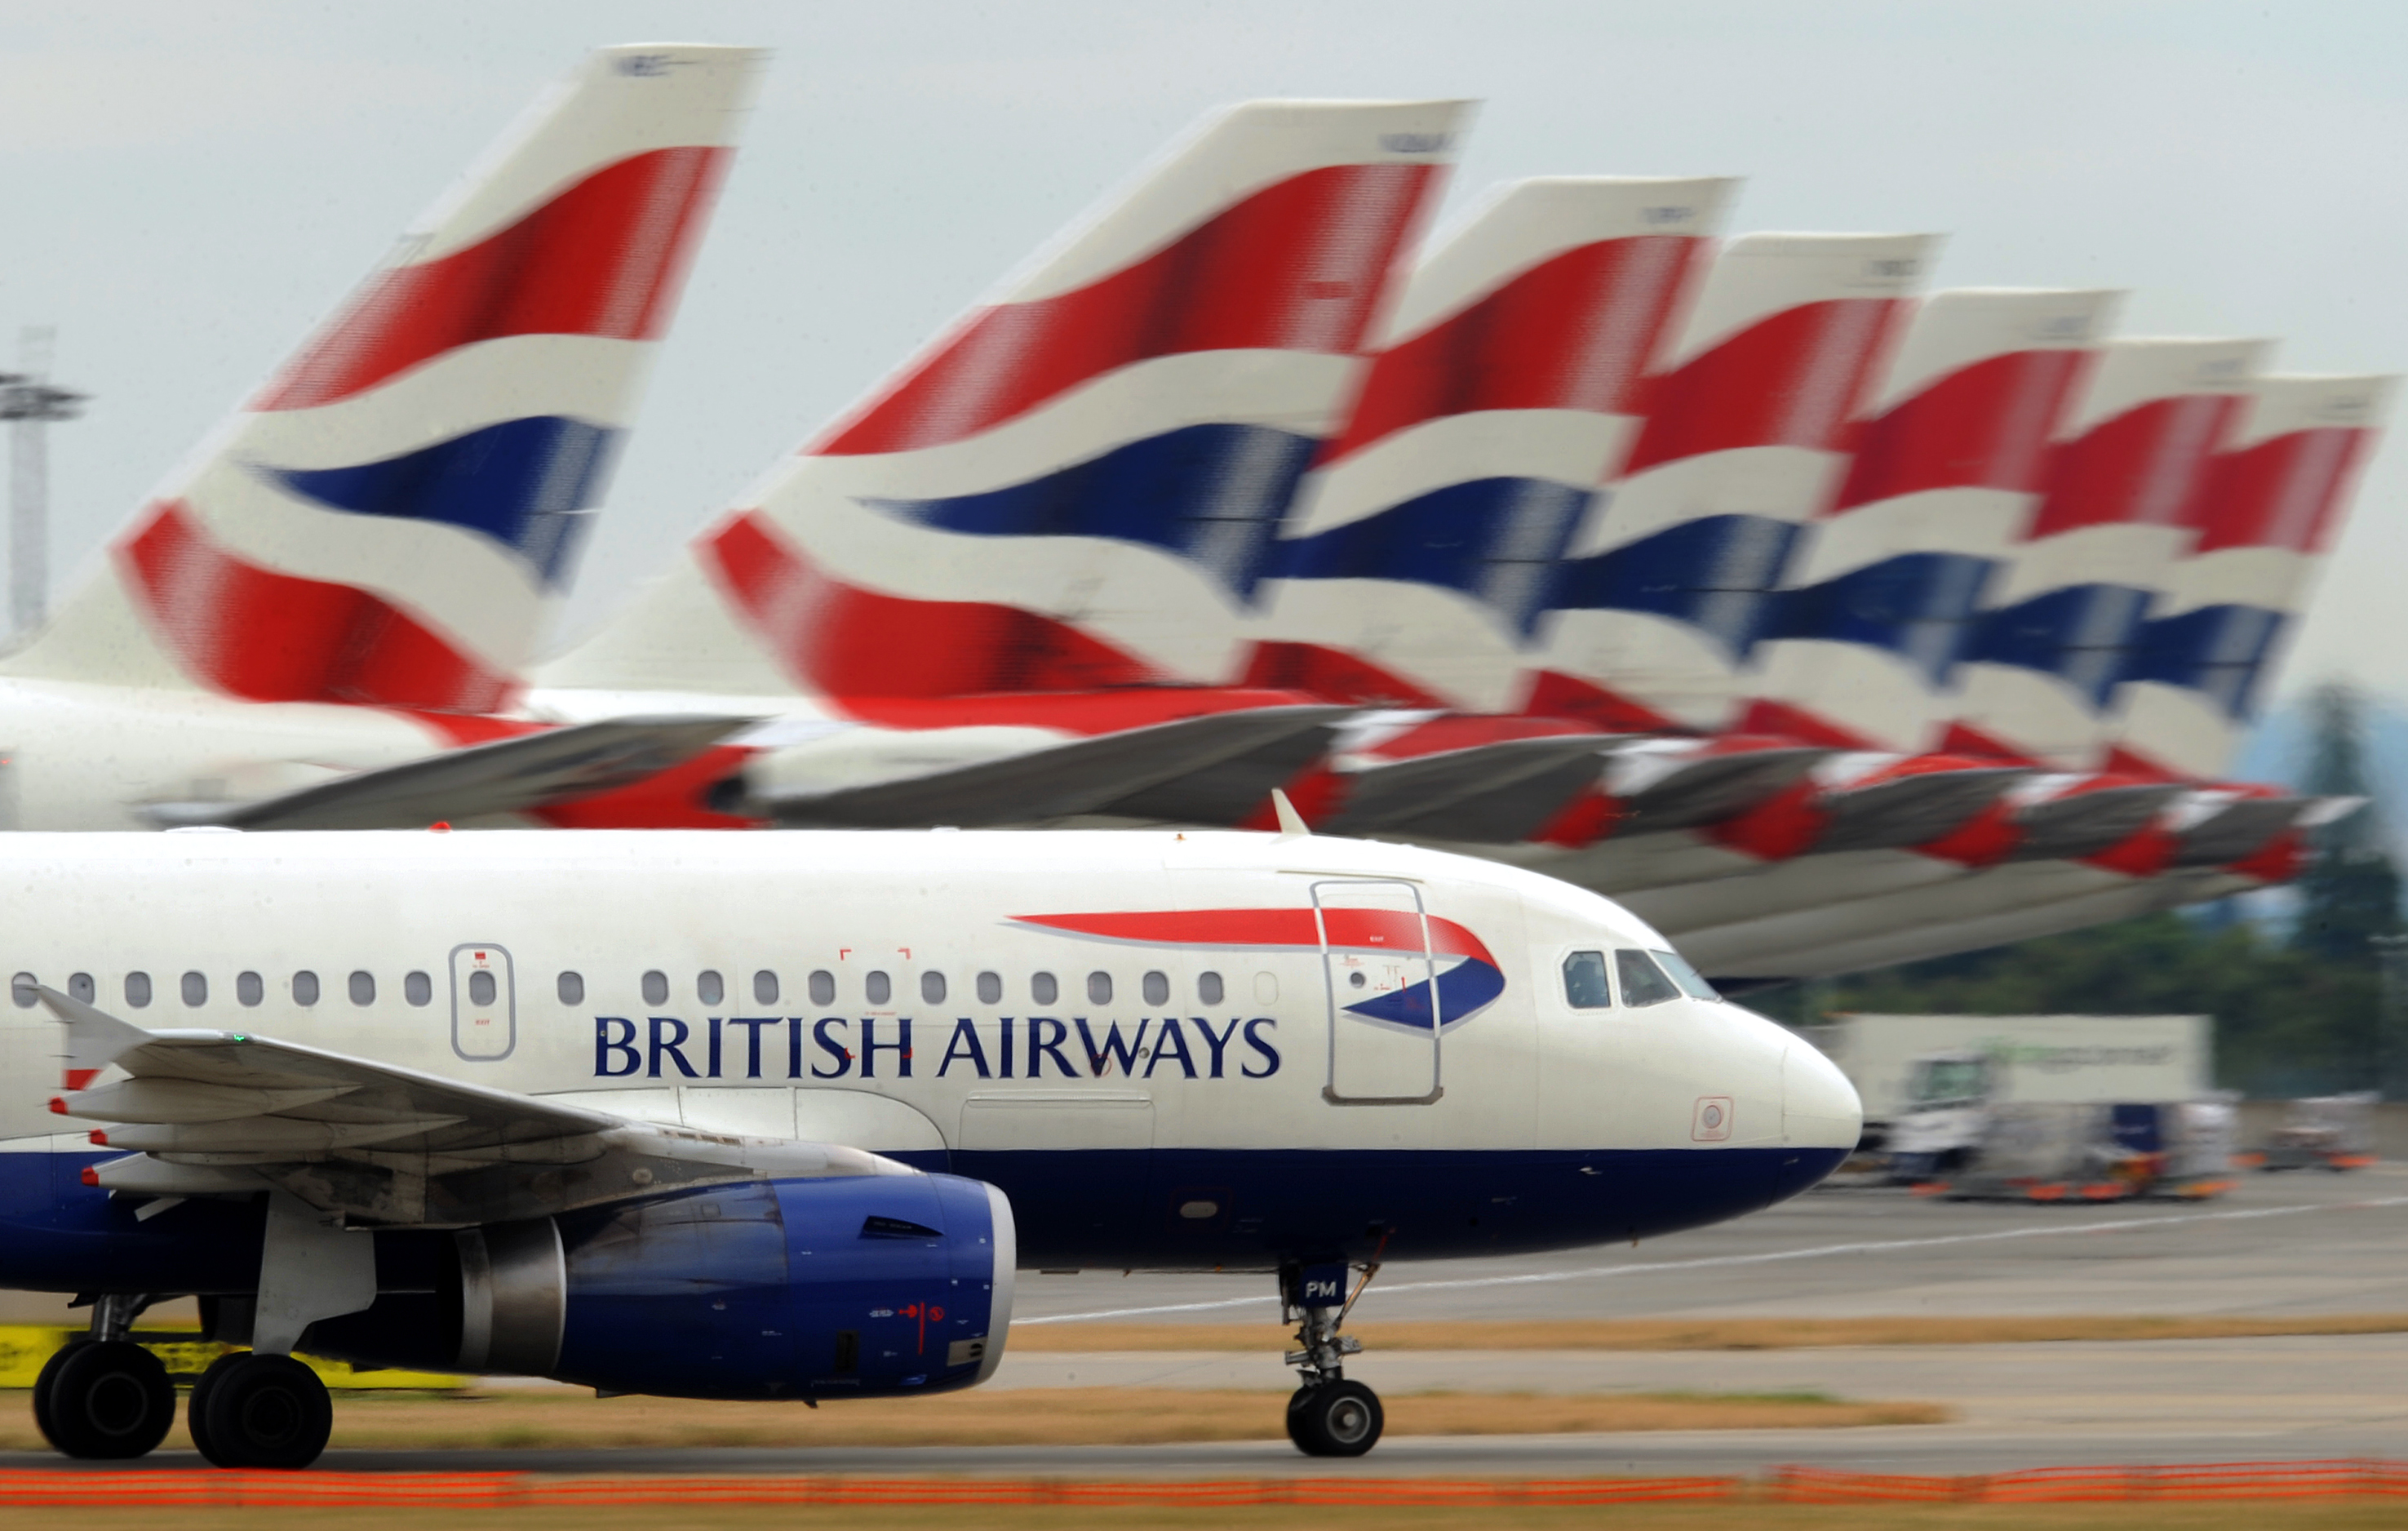 A British Airways aircraft at Terminal 5 of Heathrow Airport in west London, on July 30, 2010.